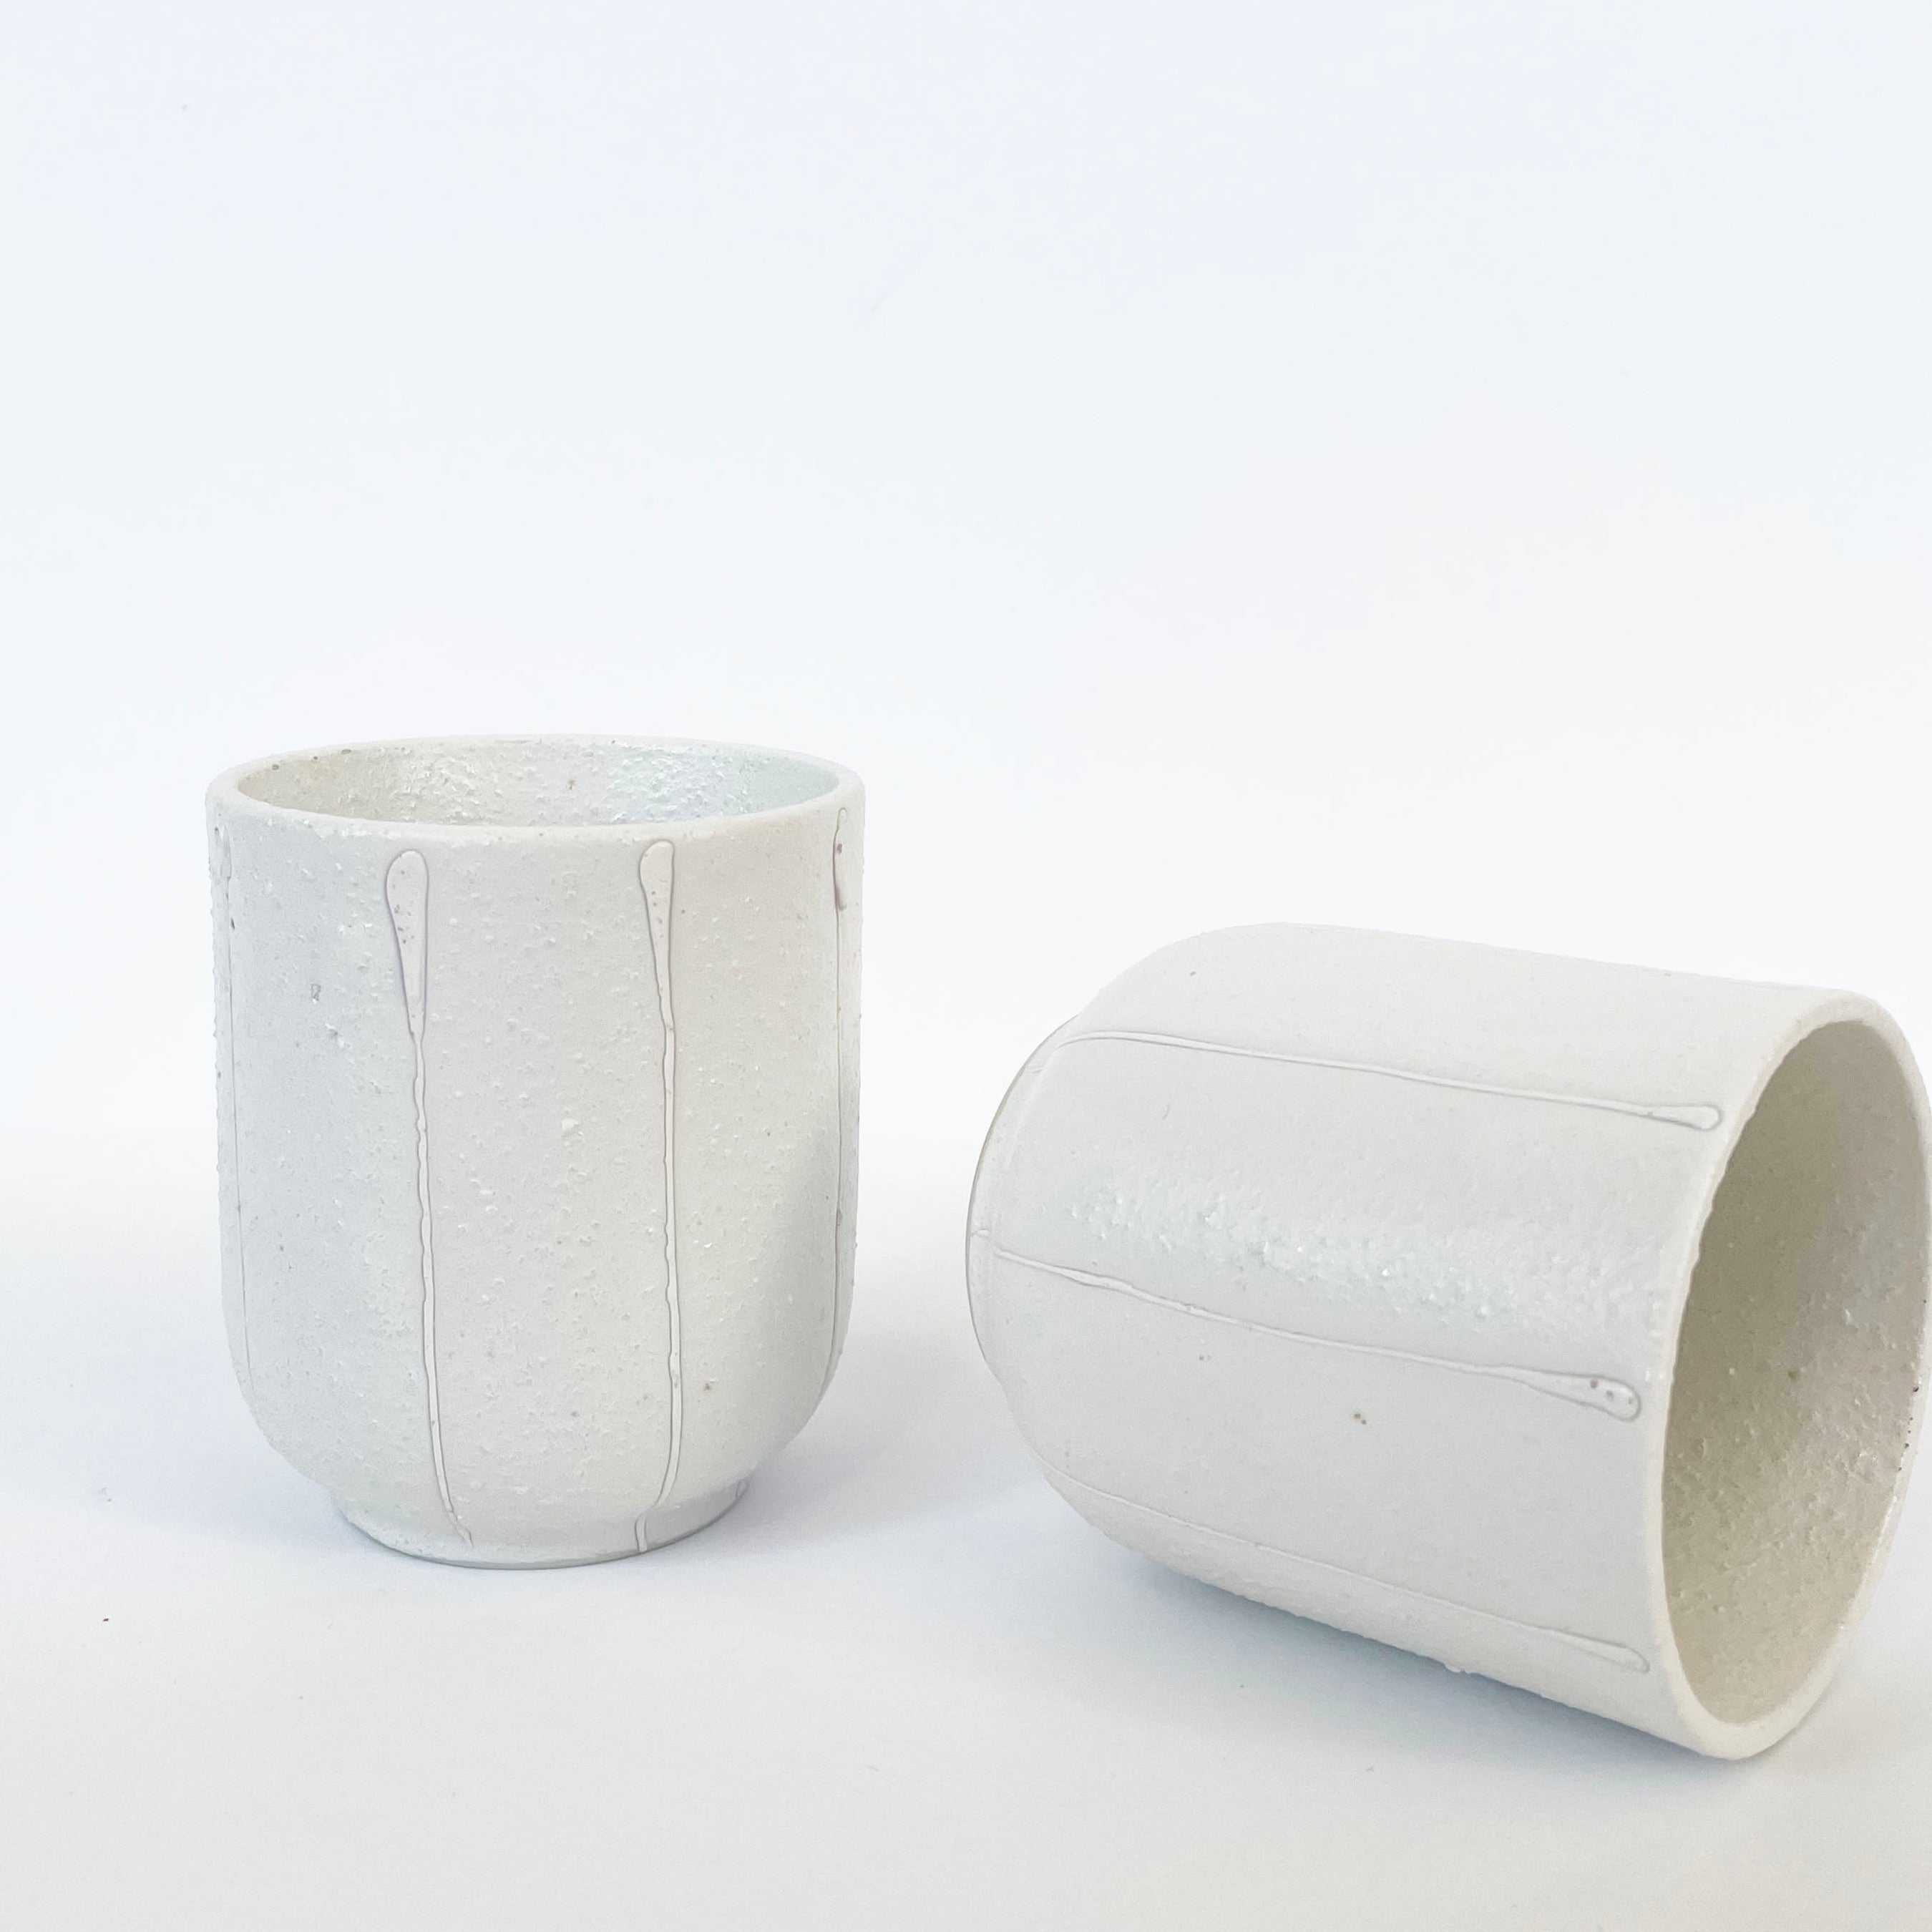 Tea mug in white with White Vertical lines